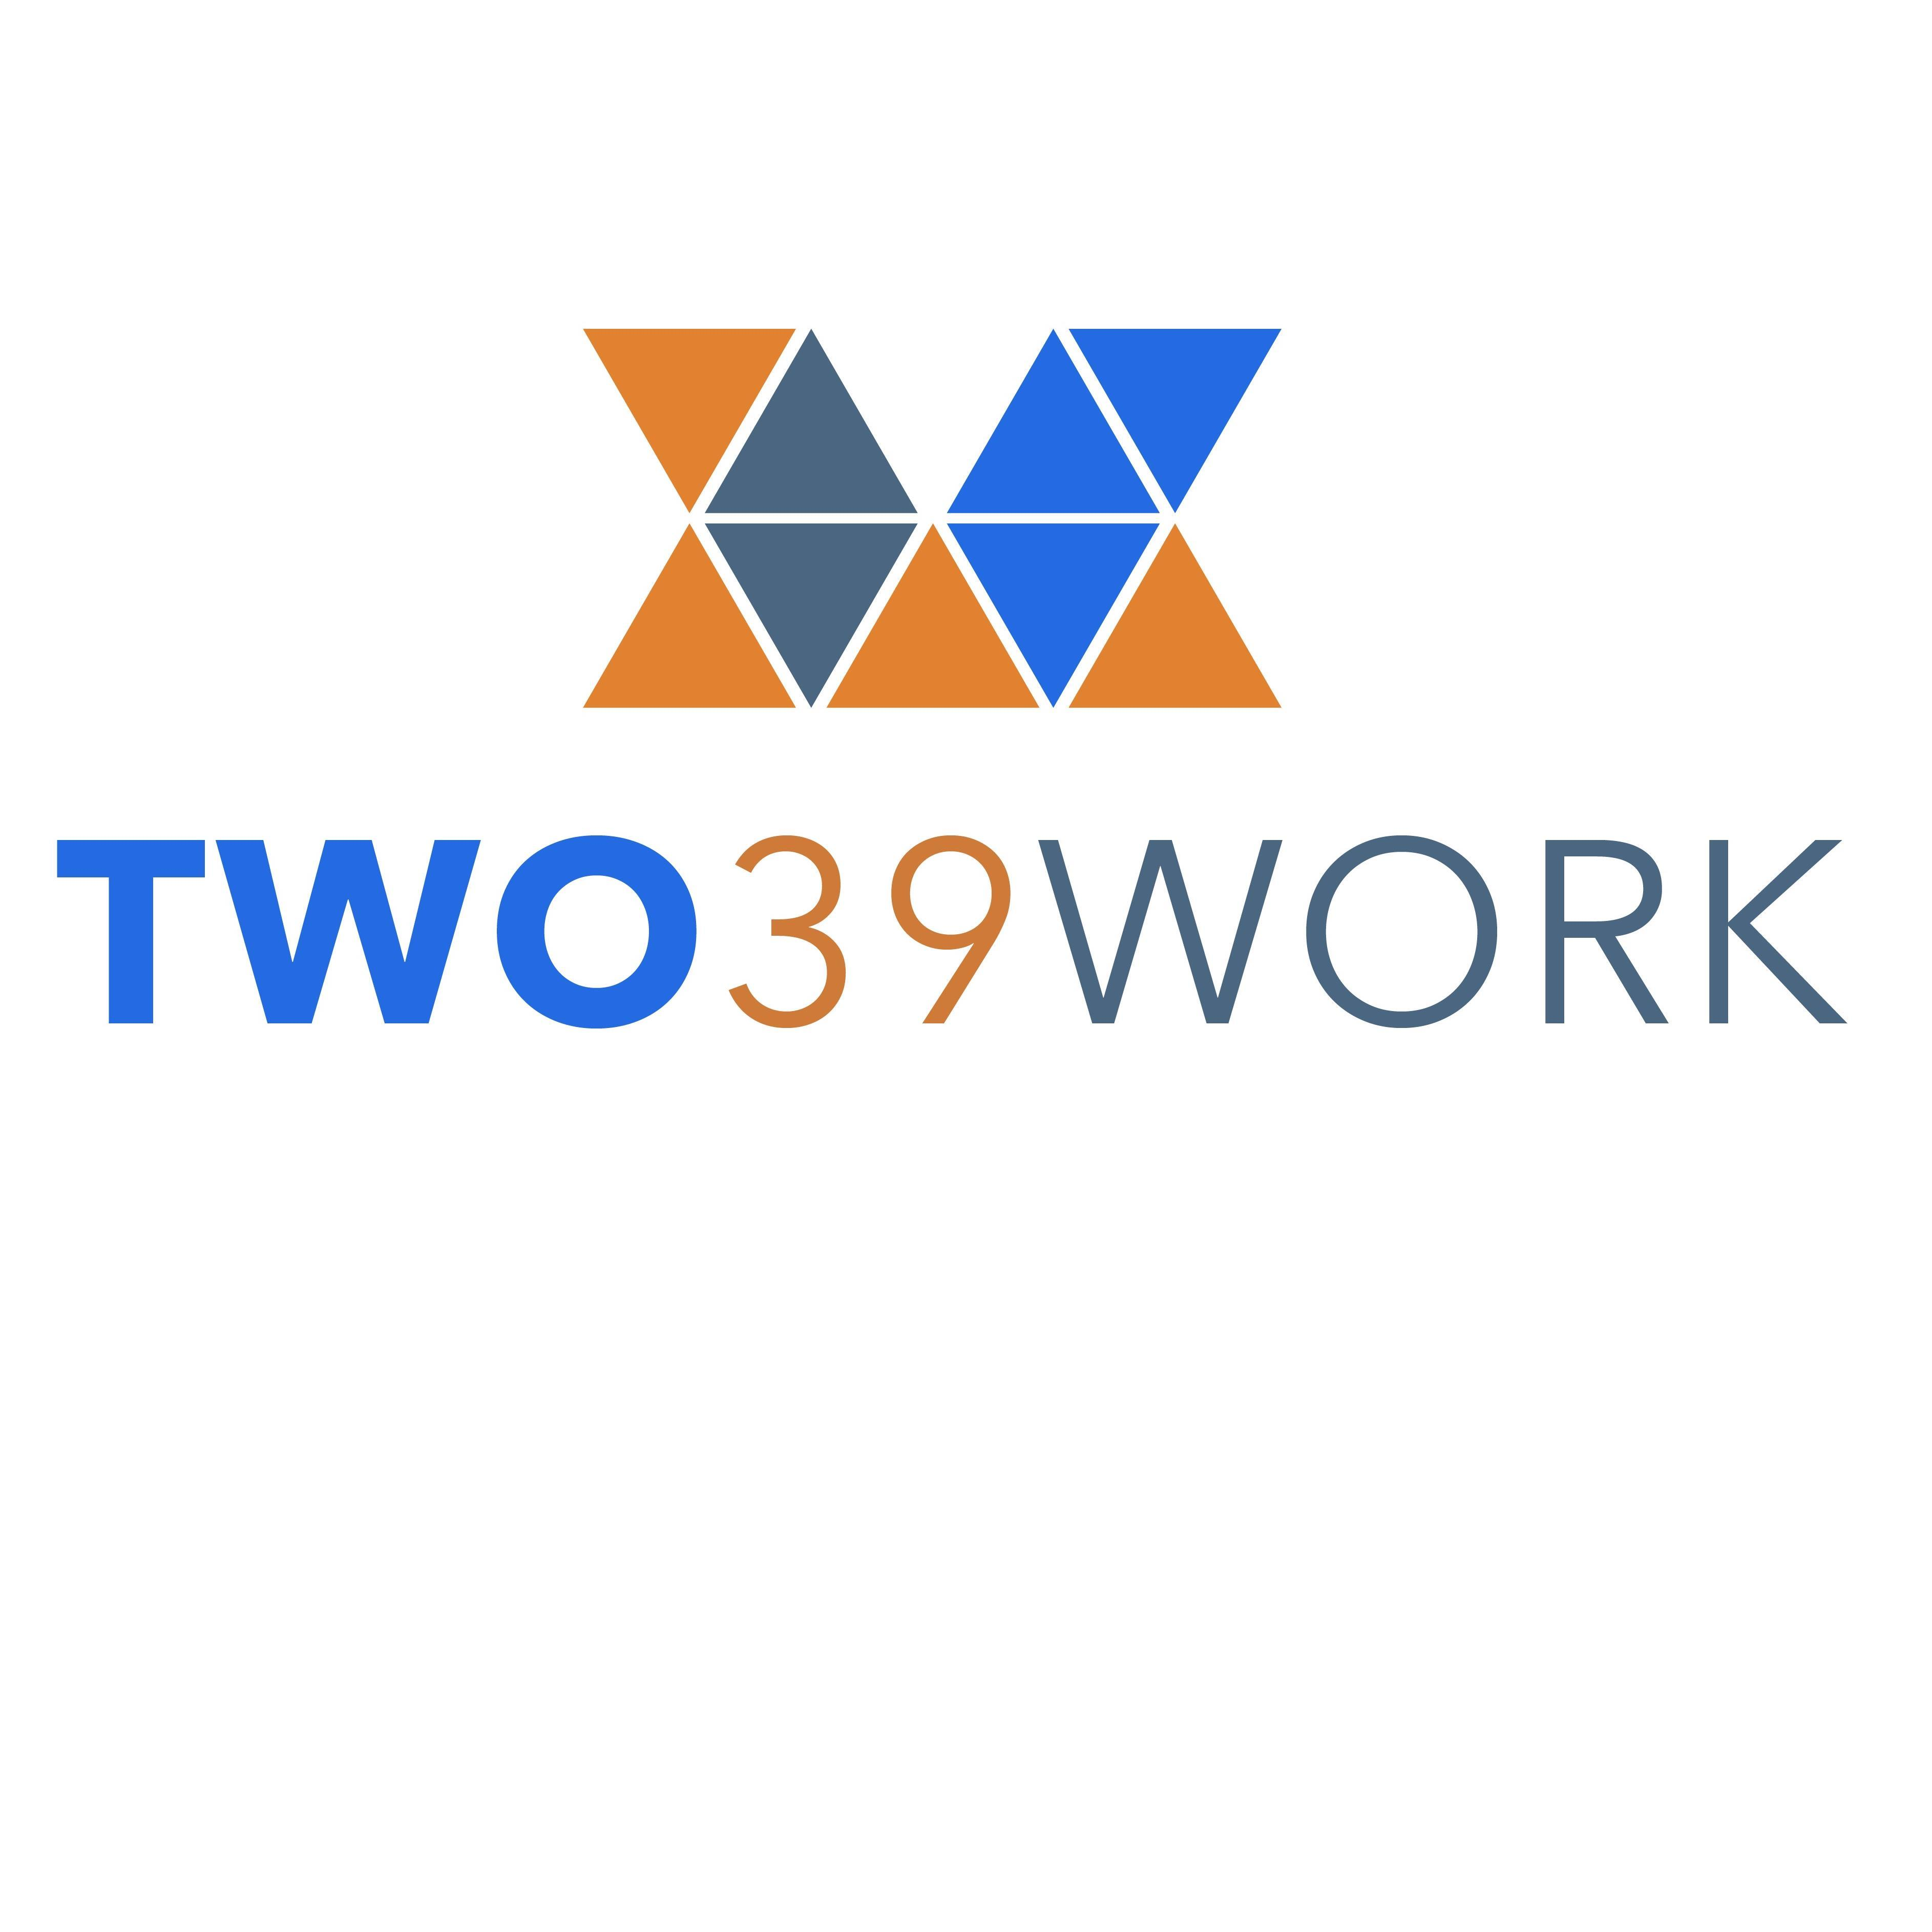 Logo of TWO39WORK